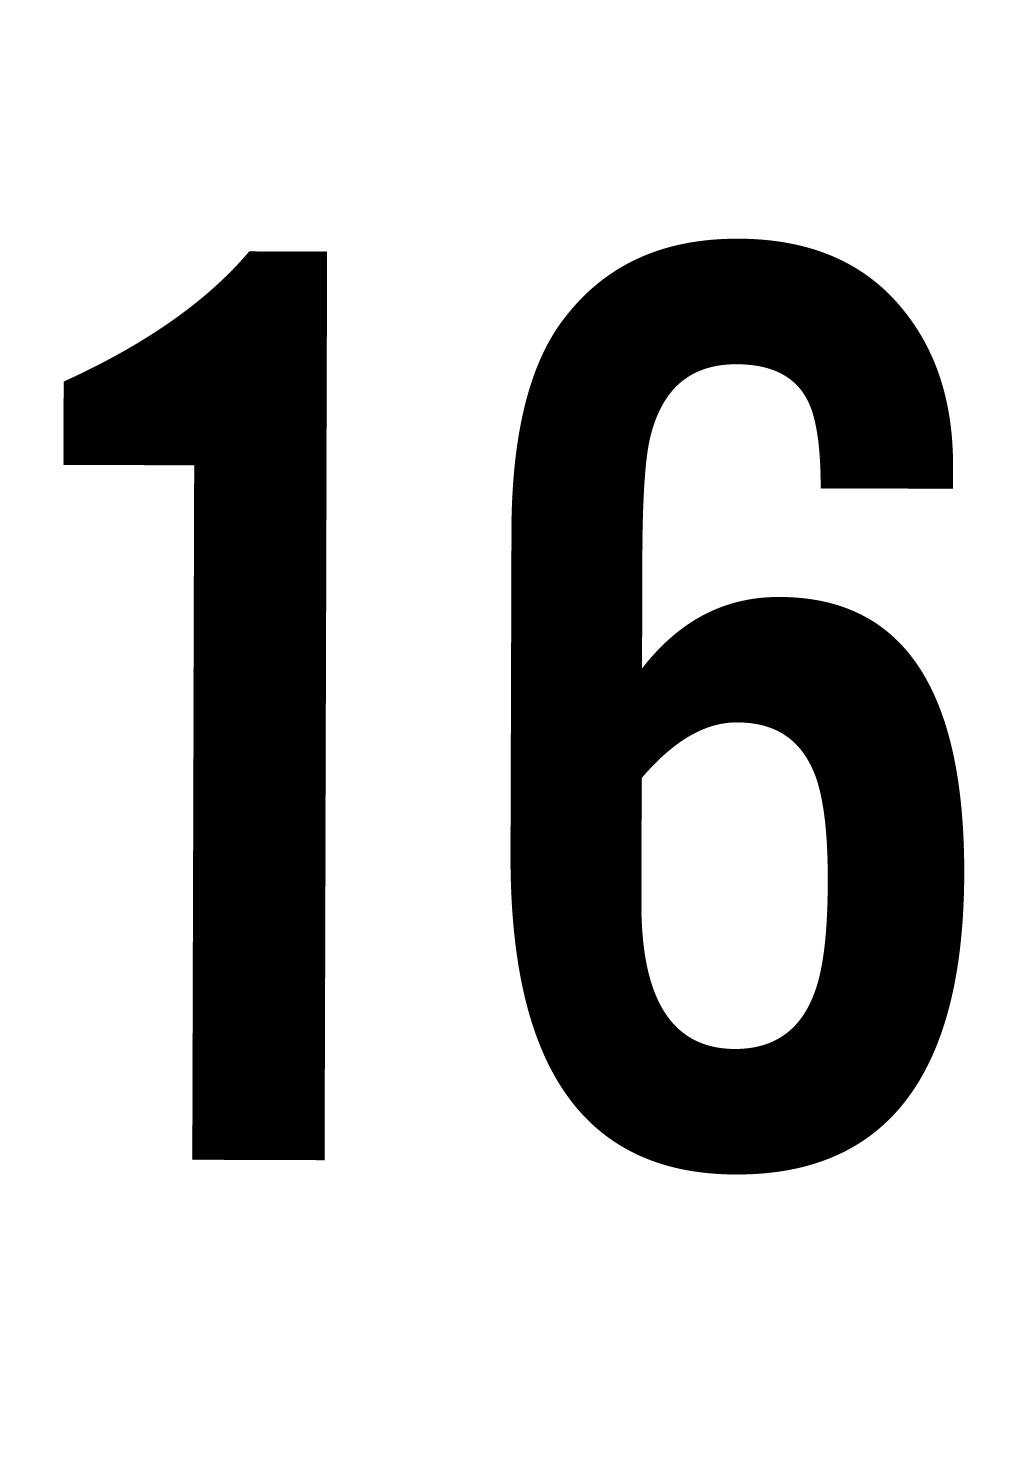 16-68.png